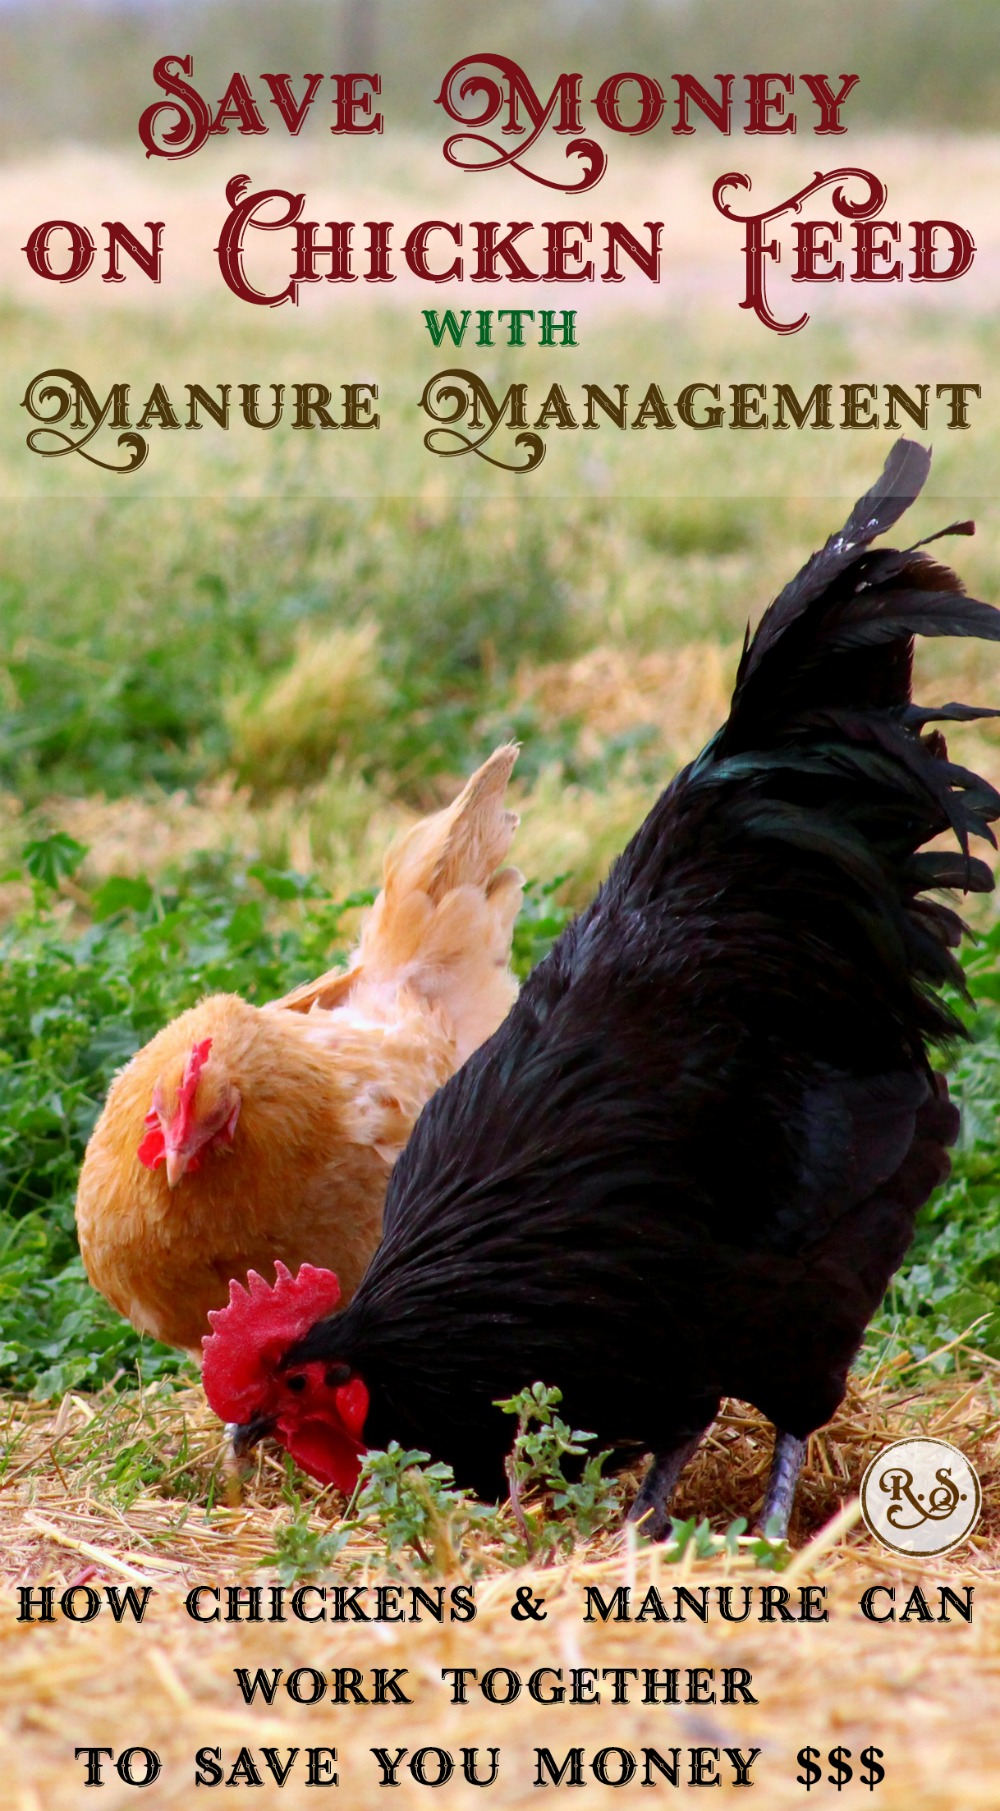 Save money on chicken feed with these easy manure management tips. Free food for the chickens--bugs, compost, worms, etc, ready for you to utilize. Health-promoting & easy DIY ideas for your backyard.